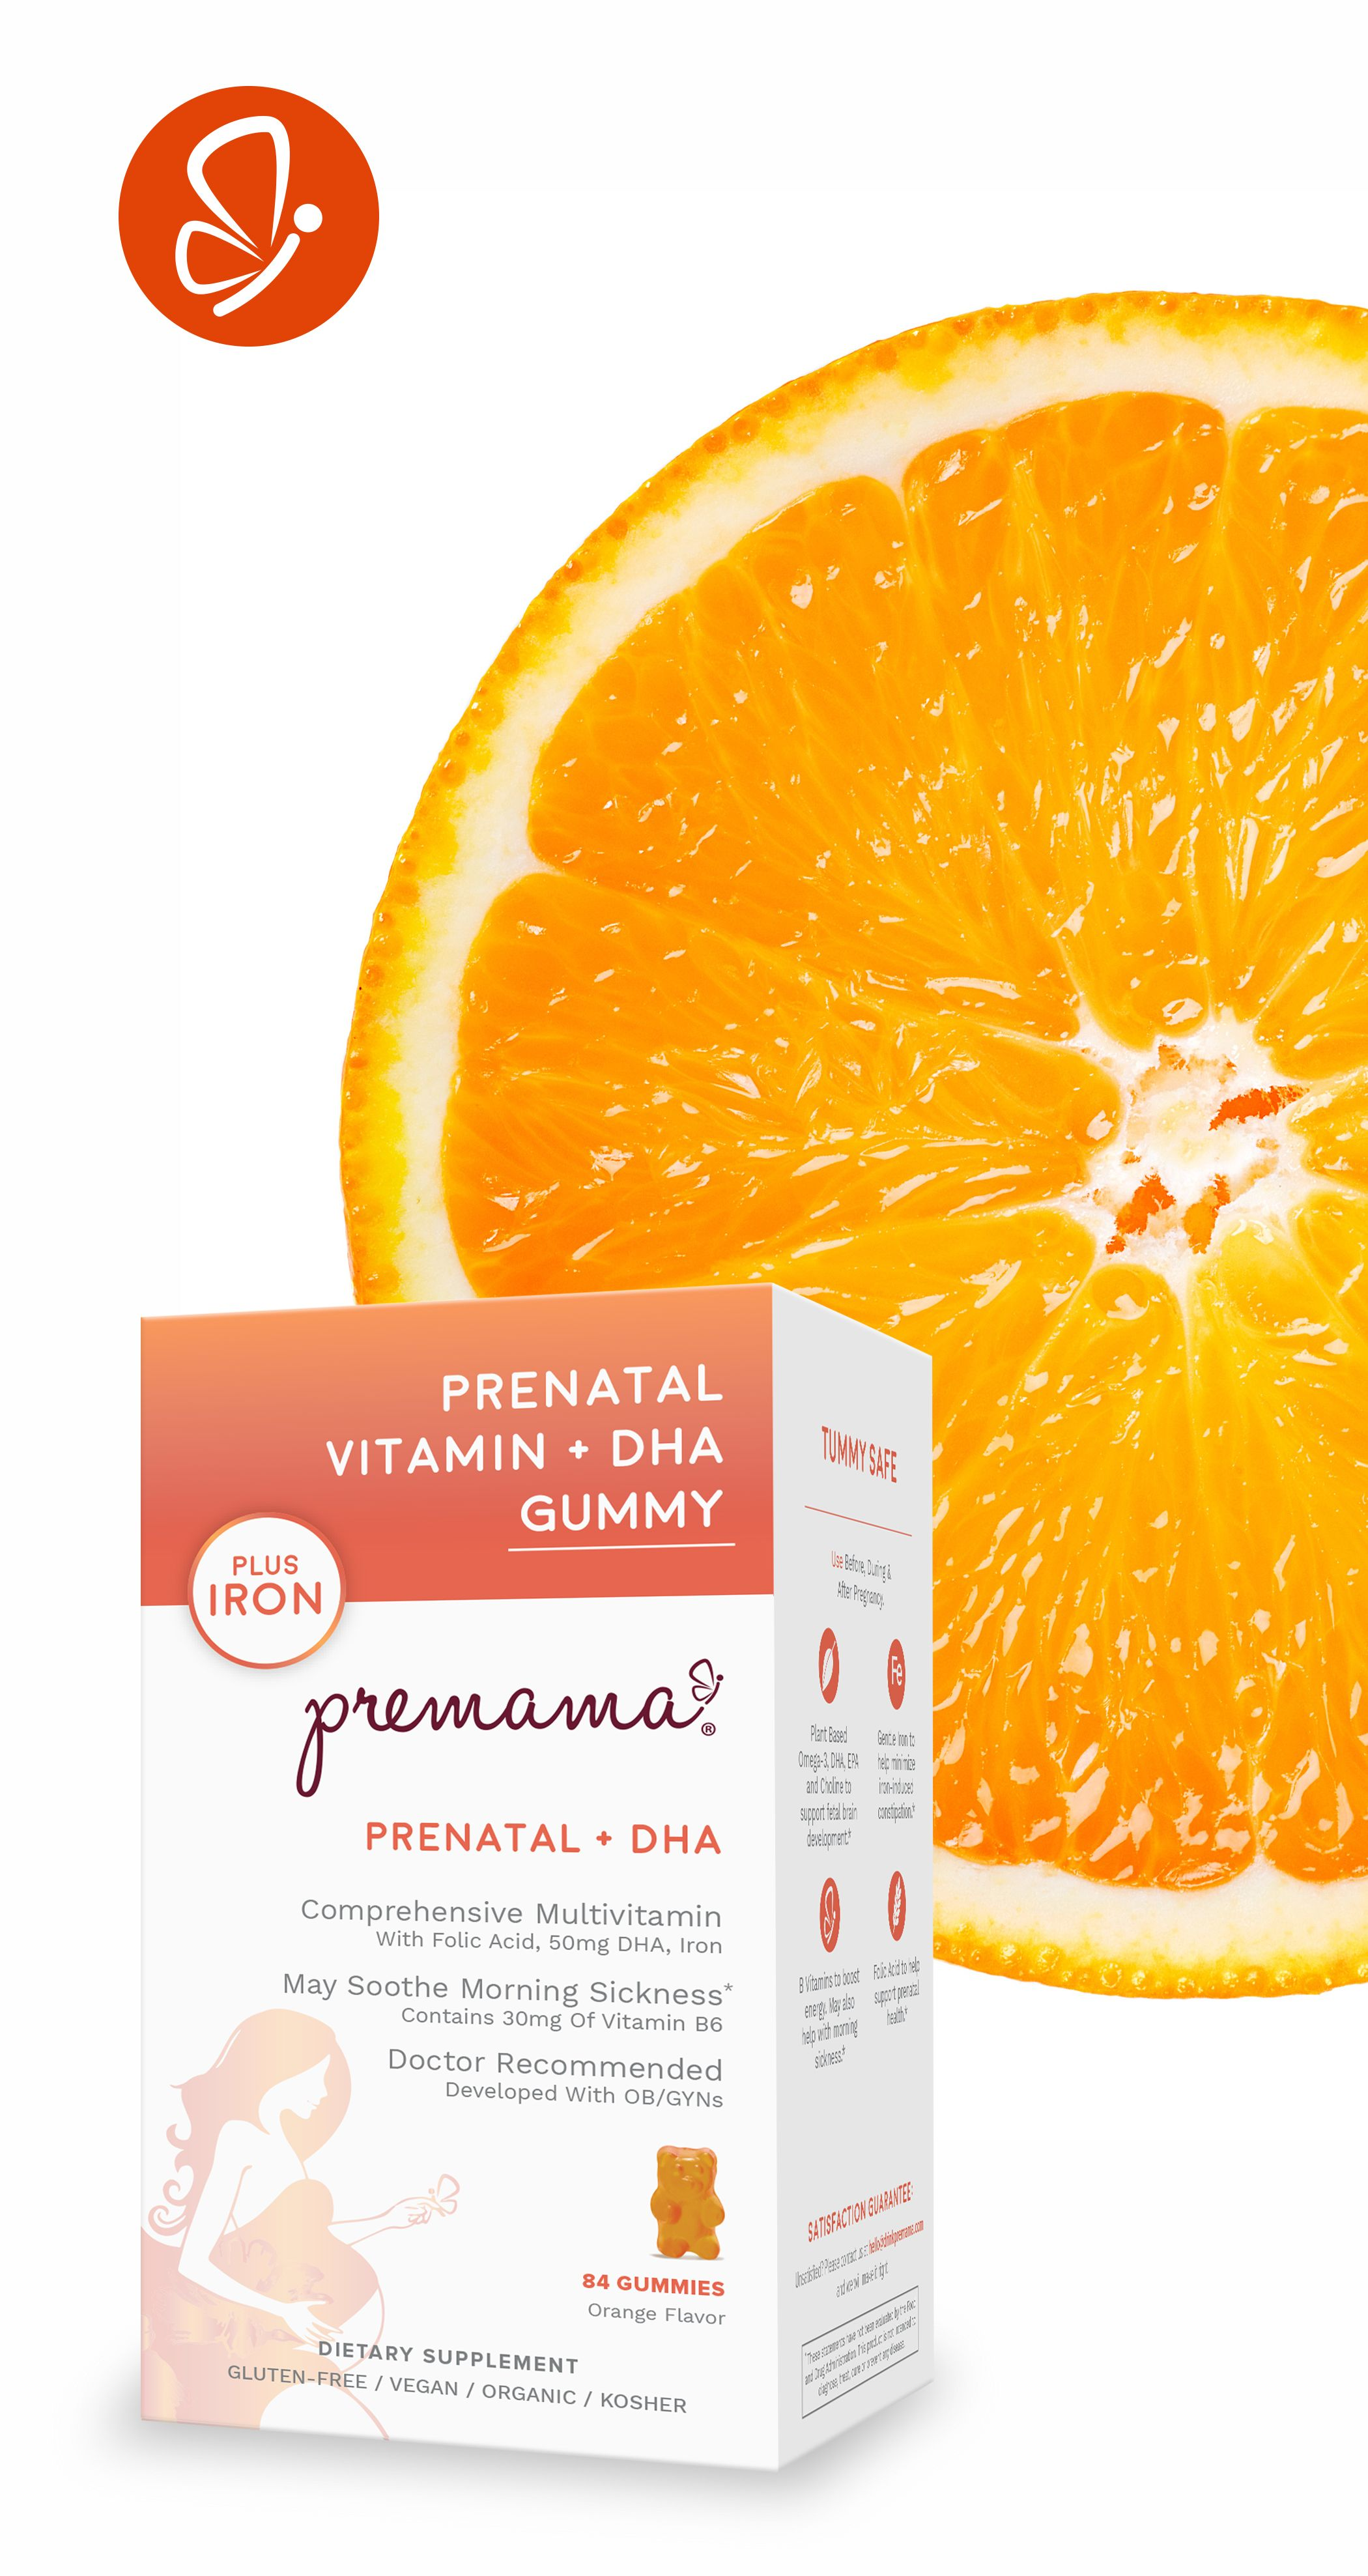 83d83e7d8 Did you know Premama Prenatal Vitamin + DHA Gummy is completely organic